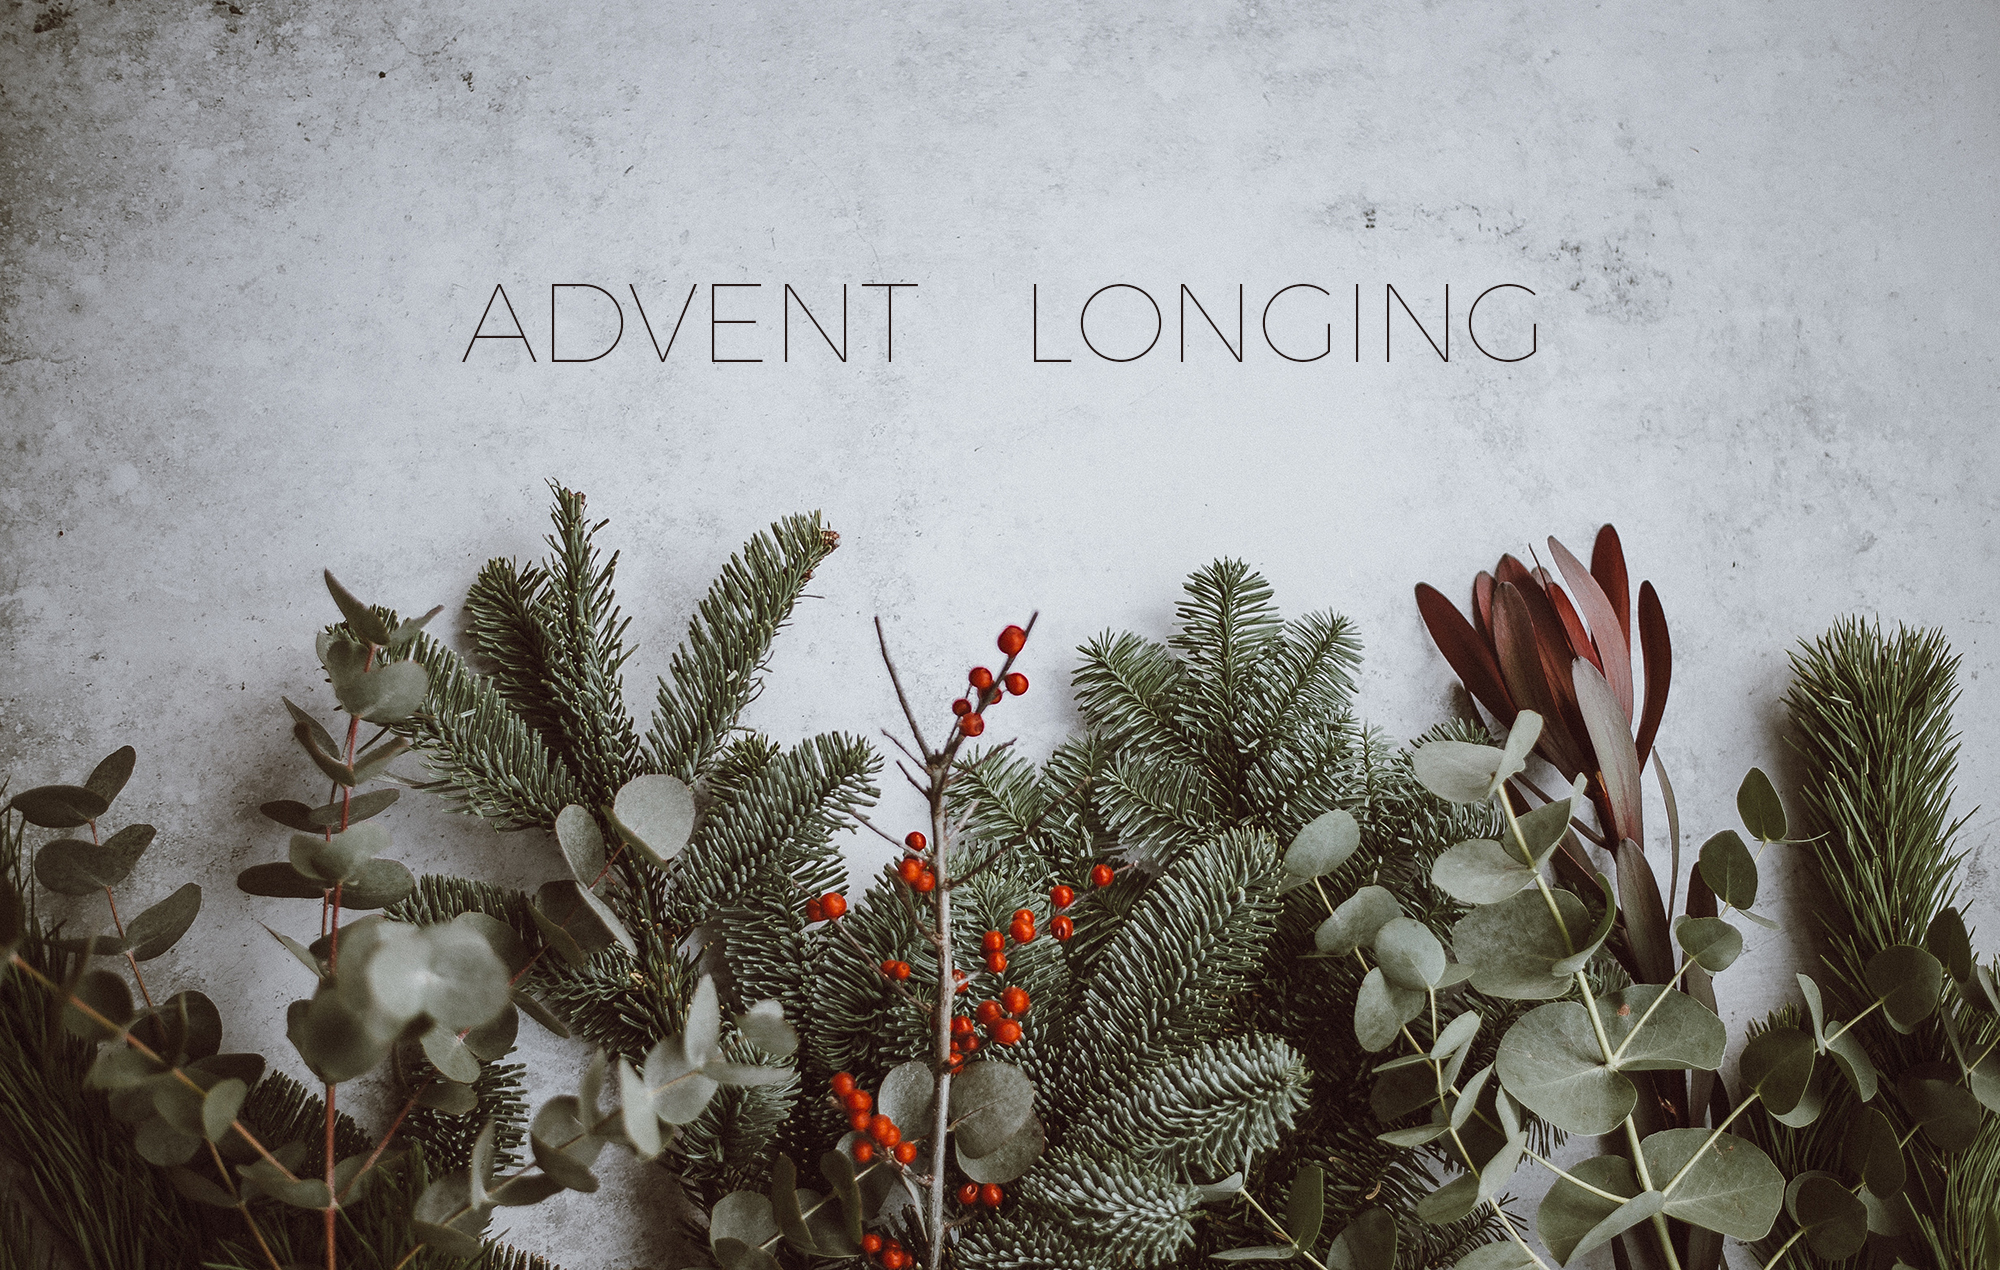 advent-longing.jpg